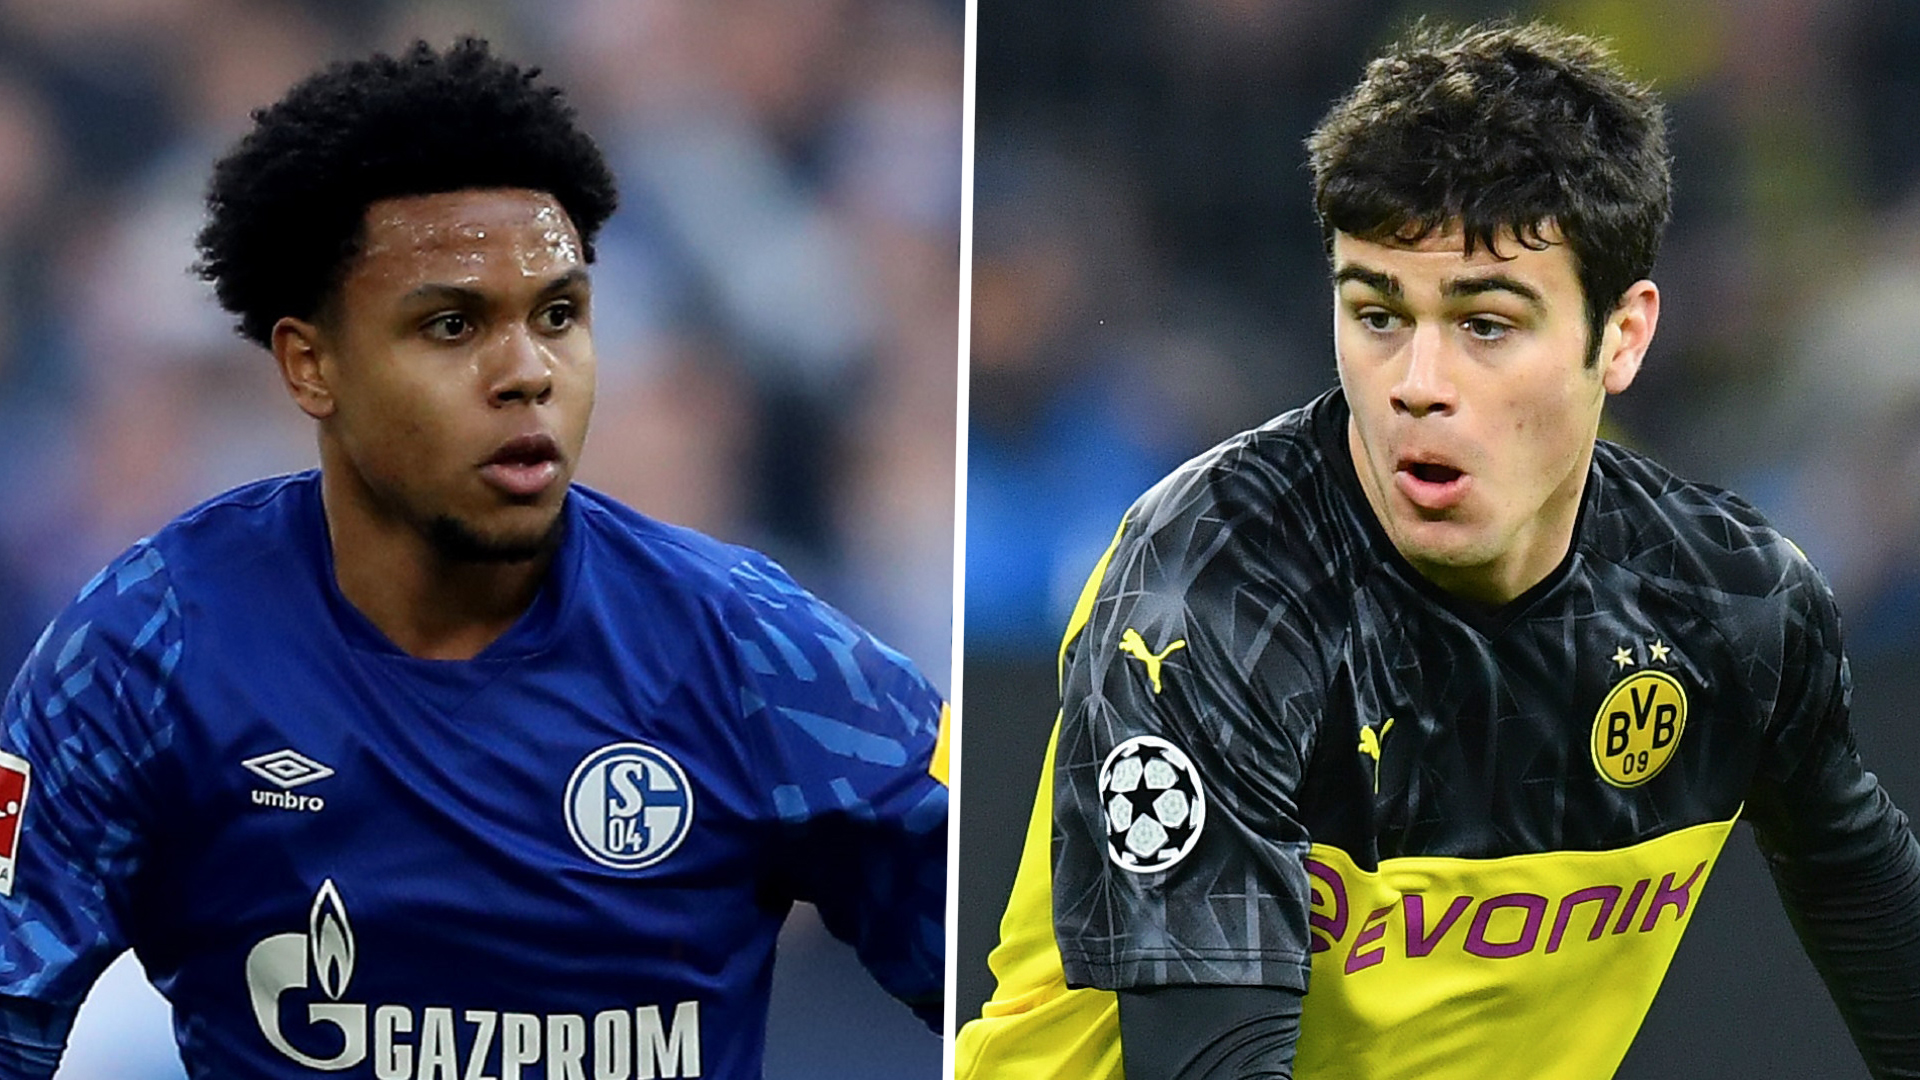 USMNT stars in Bundesliga: Reyna, McKennie & 10 top Americans playing in soccer in Germany